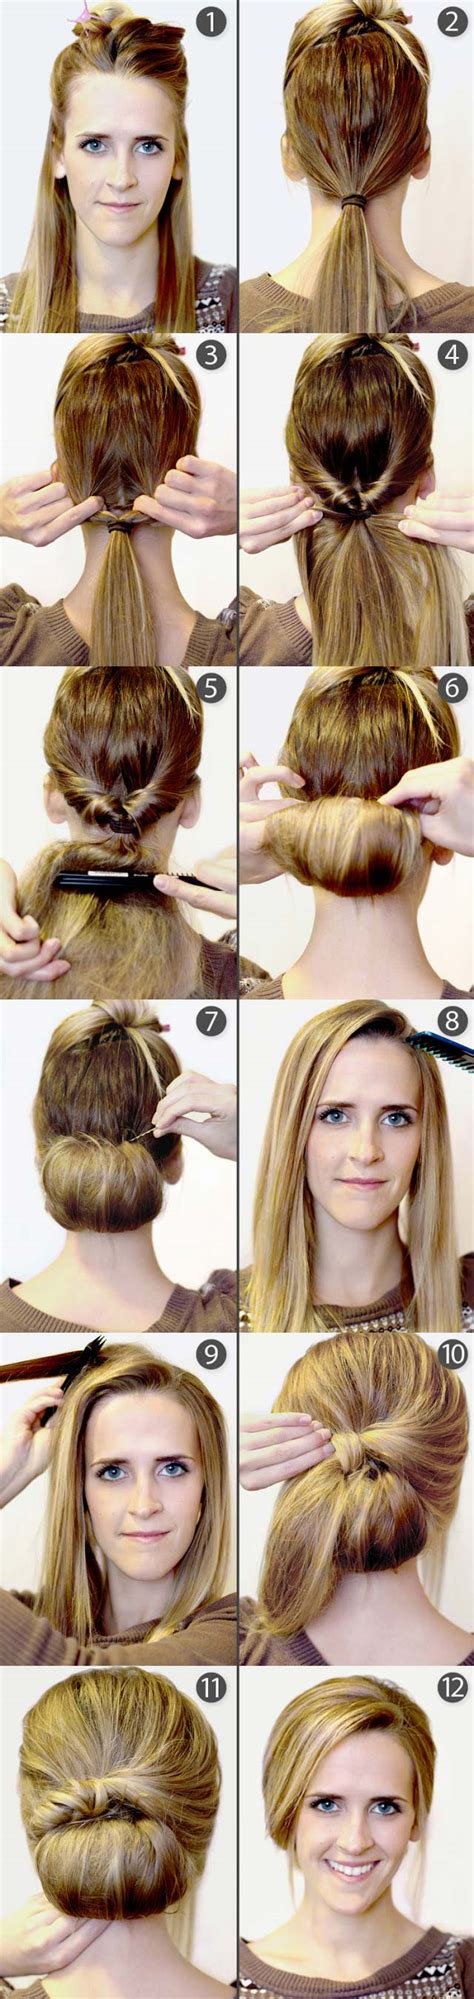 diy hairstyles com 9 pretty diy hairstyles with step by step tutorials